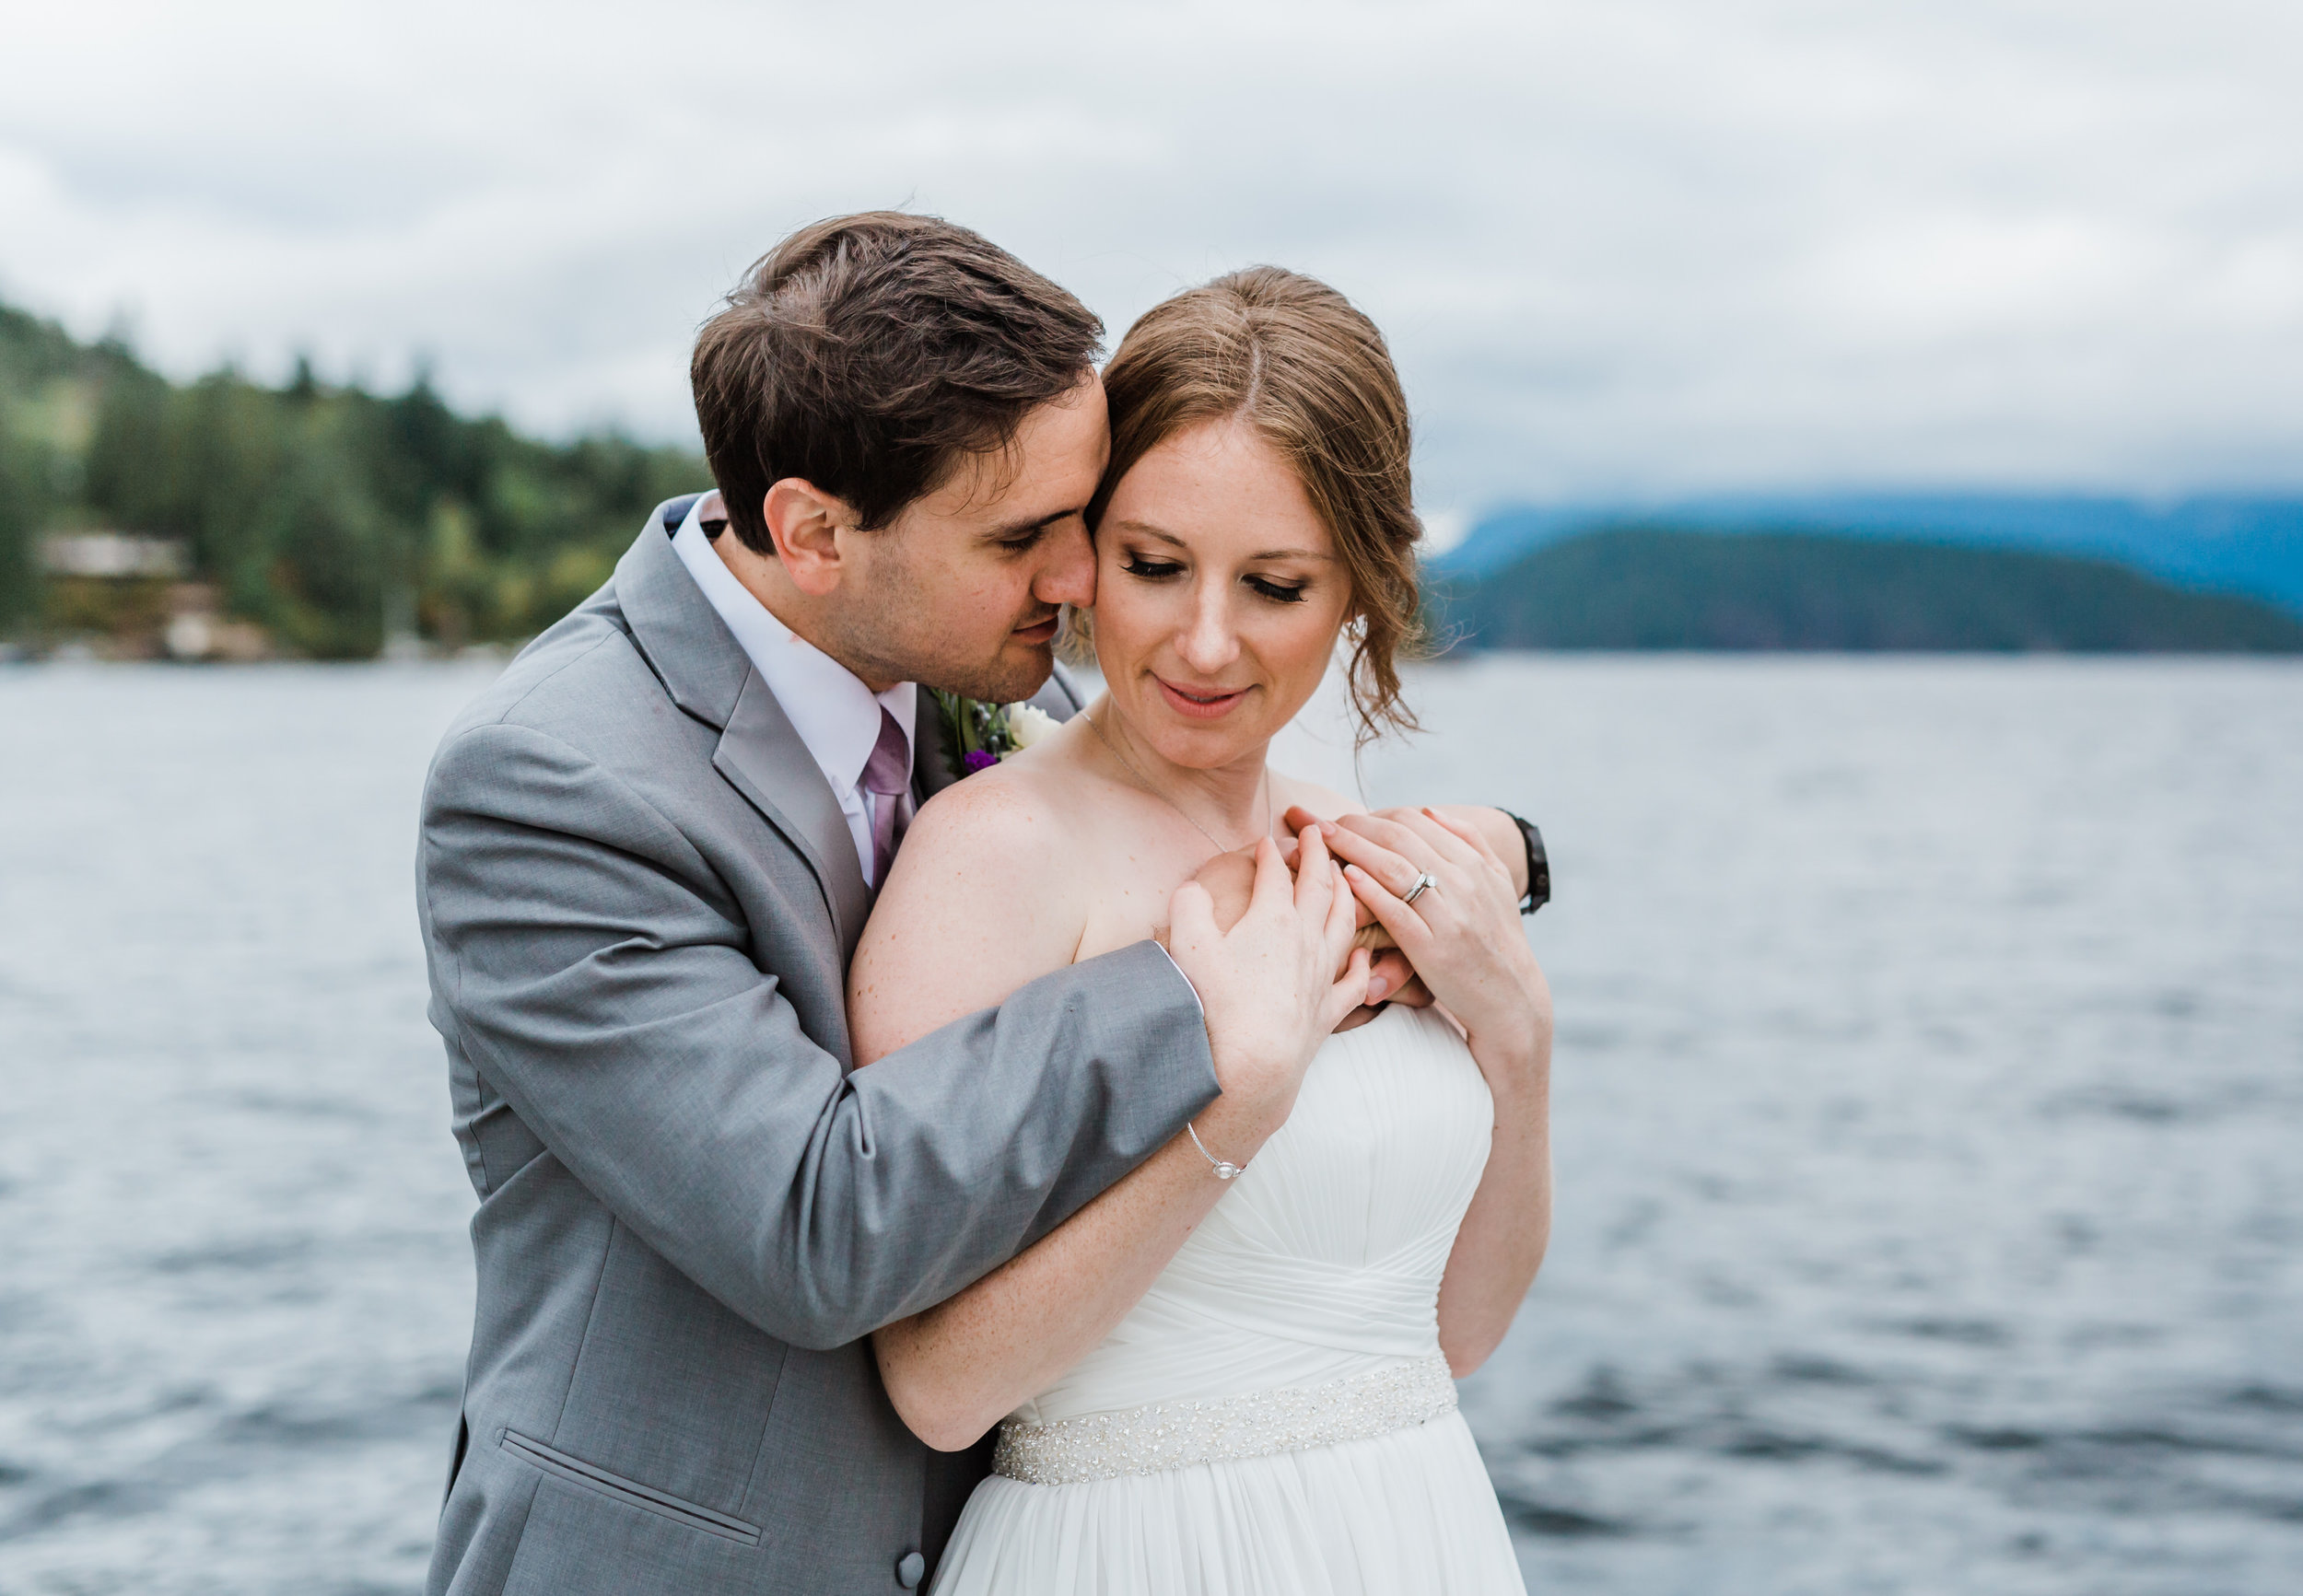 West Coast Wilderness Lodge Wedding Photos - Vancouver Wedding Photographer & Videographer - Sunshine Coast Wedding Photos - Sunshine Coast Wedding Photographer - Jennifer Picard Photography - IMG_6507.jpg